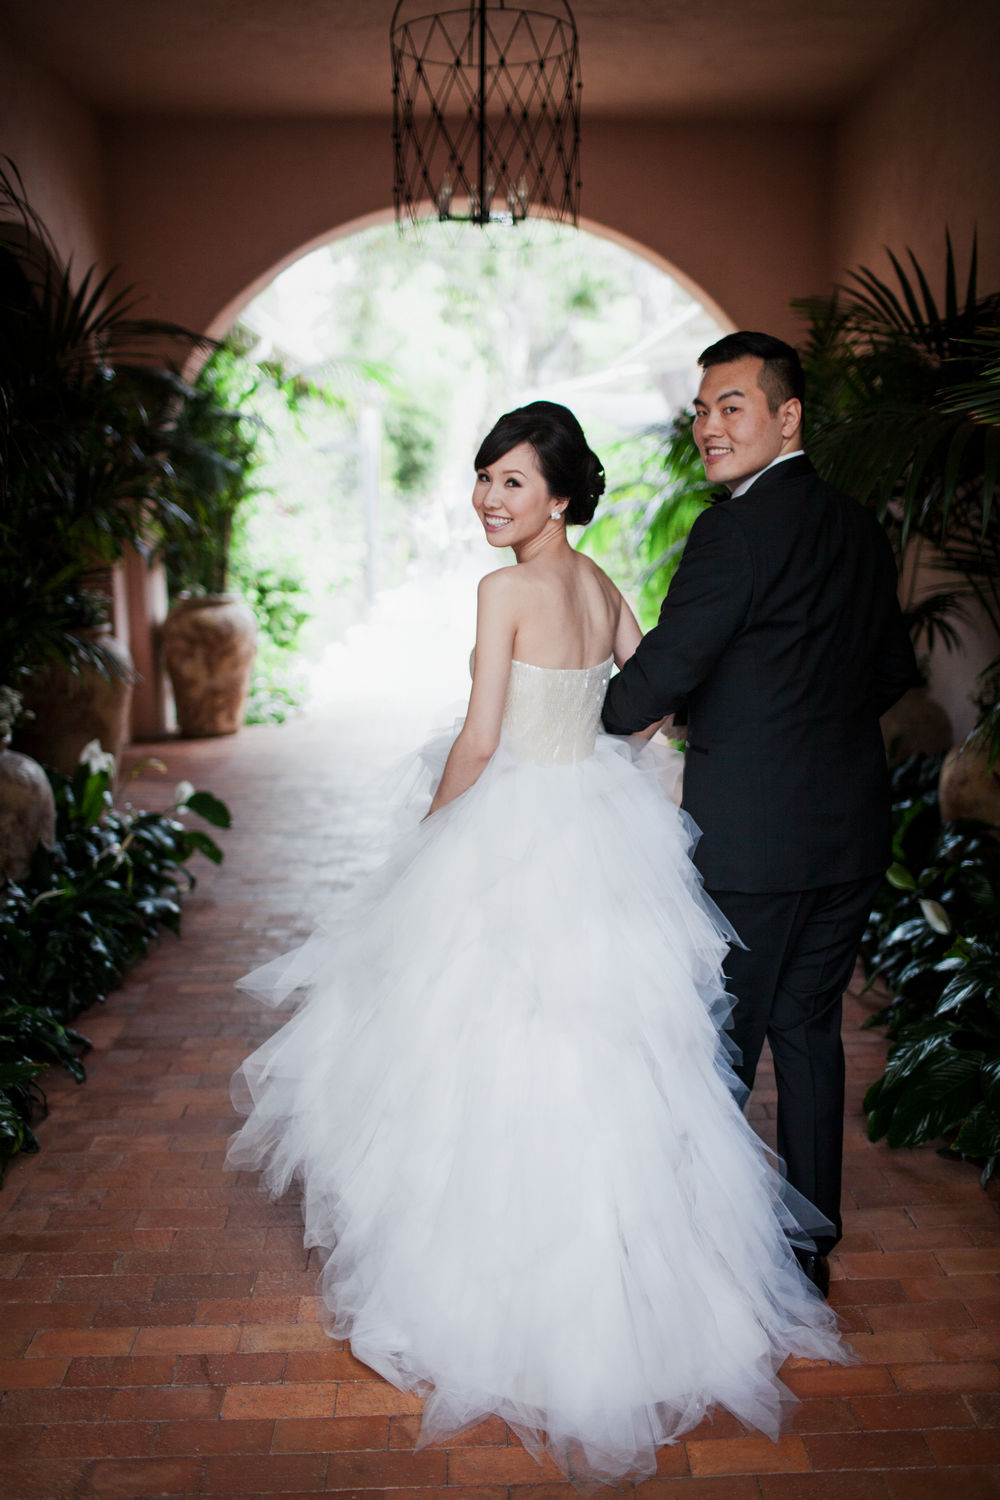 wedding-hotel-bel-air-ashley-henry-134.jpg